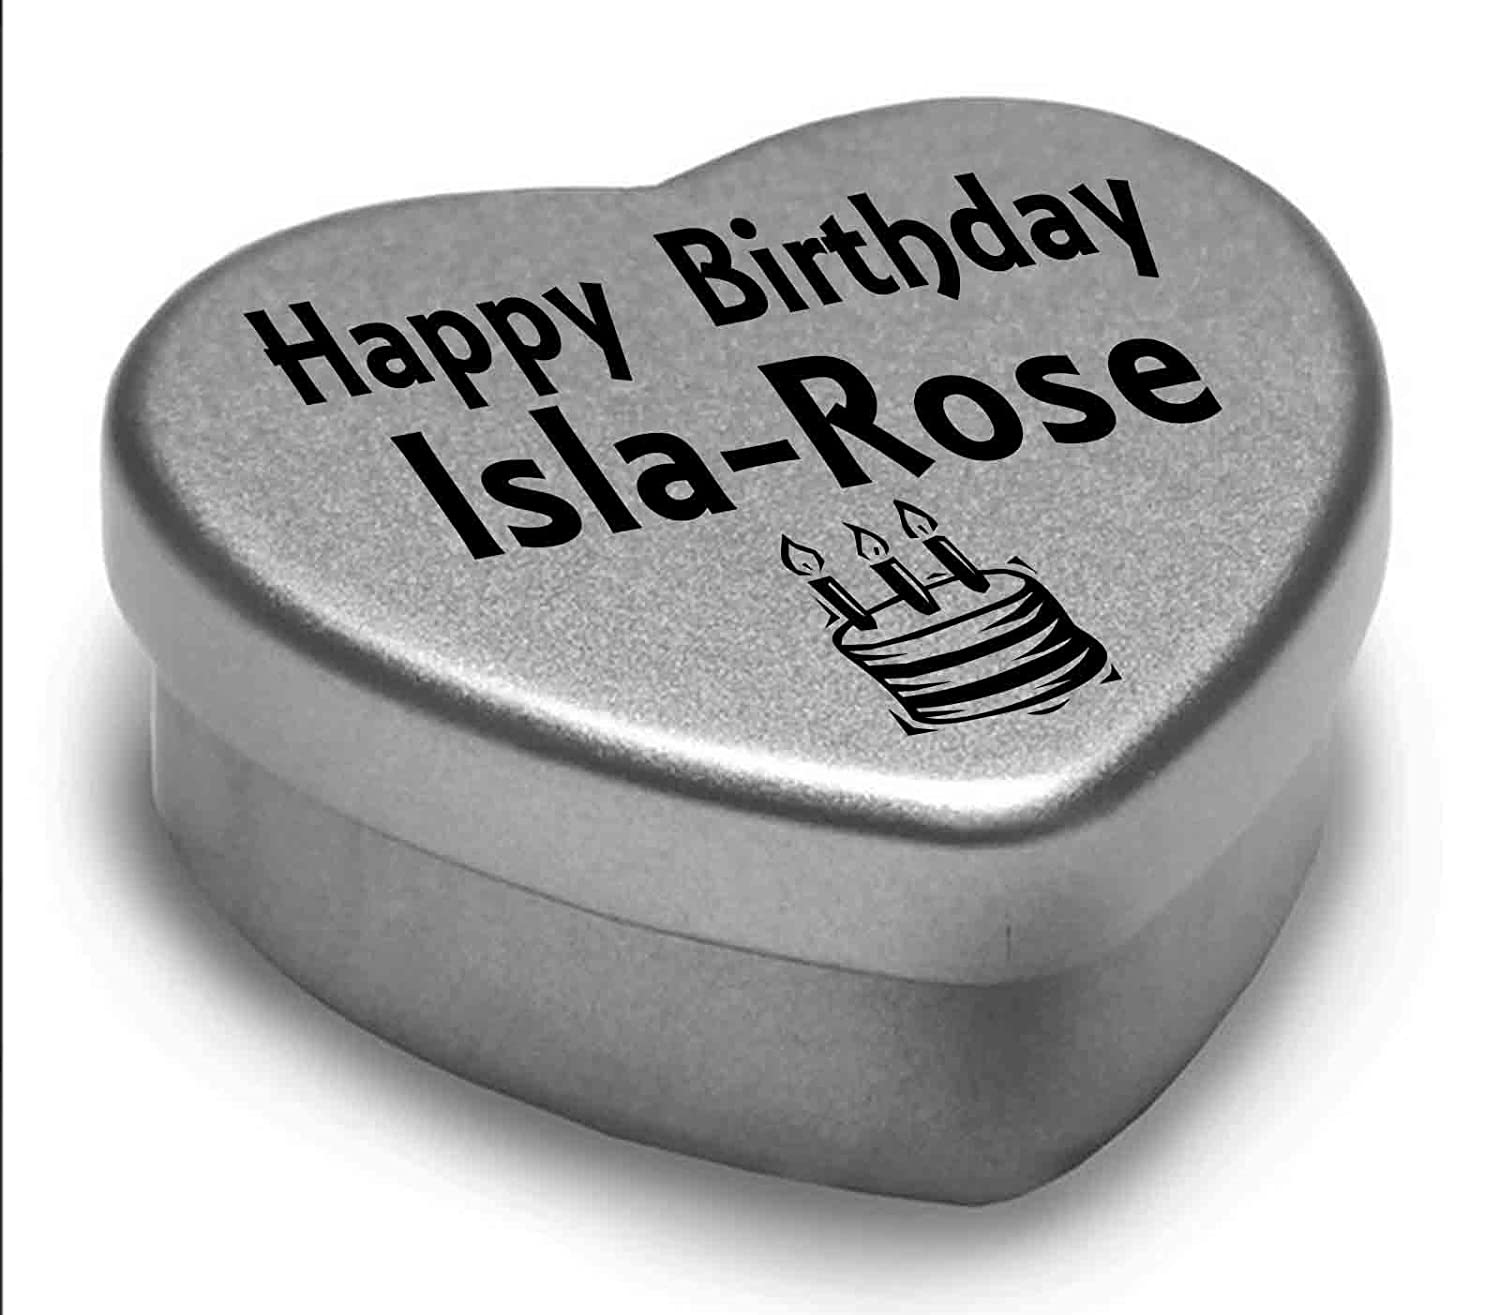 I Love You Rosie Mini Heart Tin Gift For I Heart Rosie With Chocolates